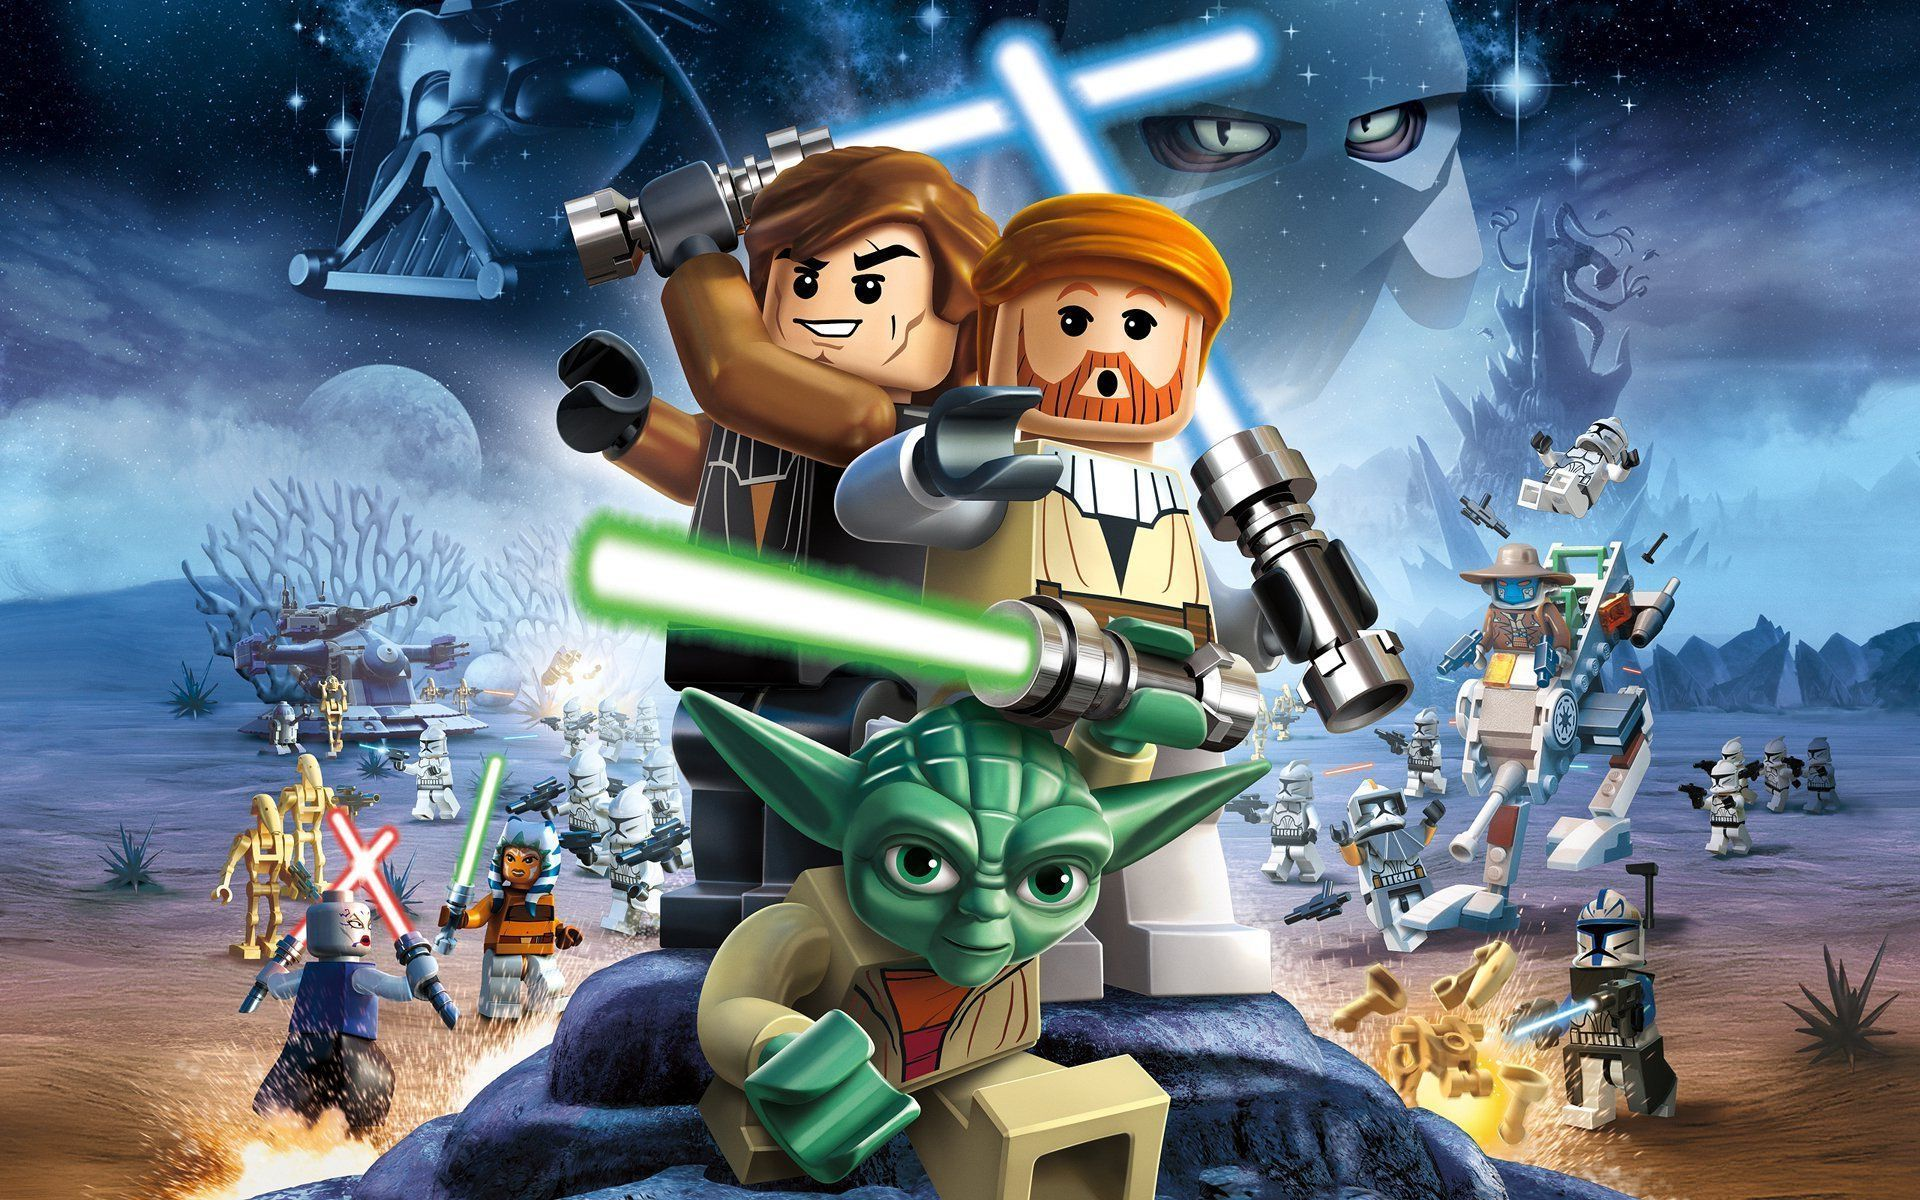 lego-star-wars-wallpaper-2.jpg 1.920×1.200 Pixel | Schultüte ...